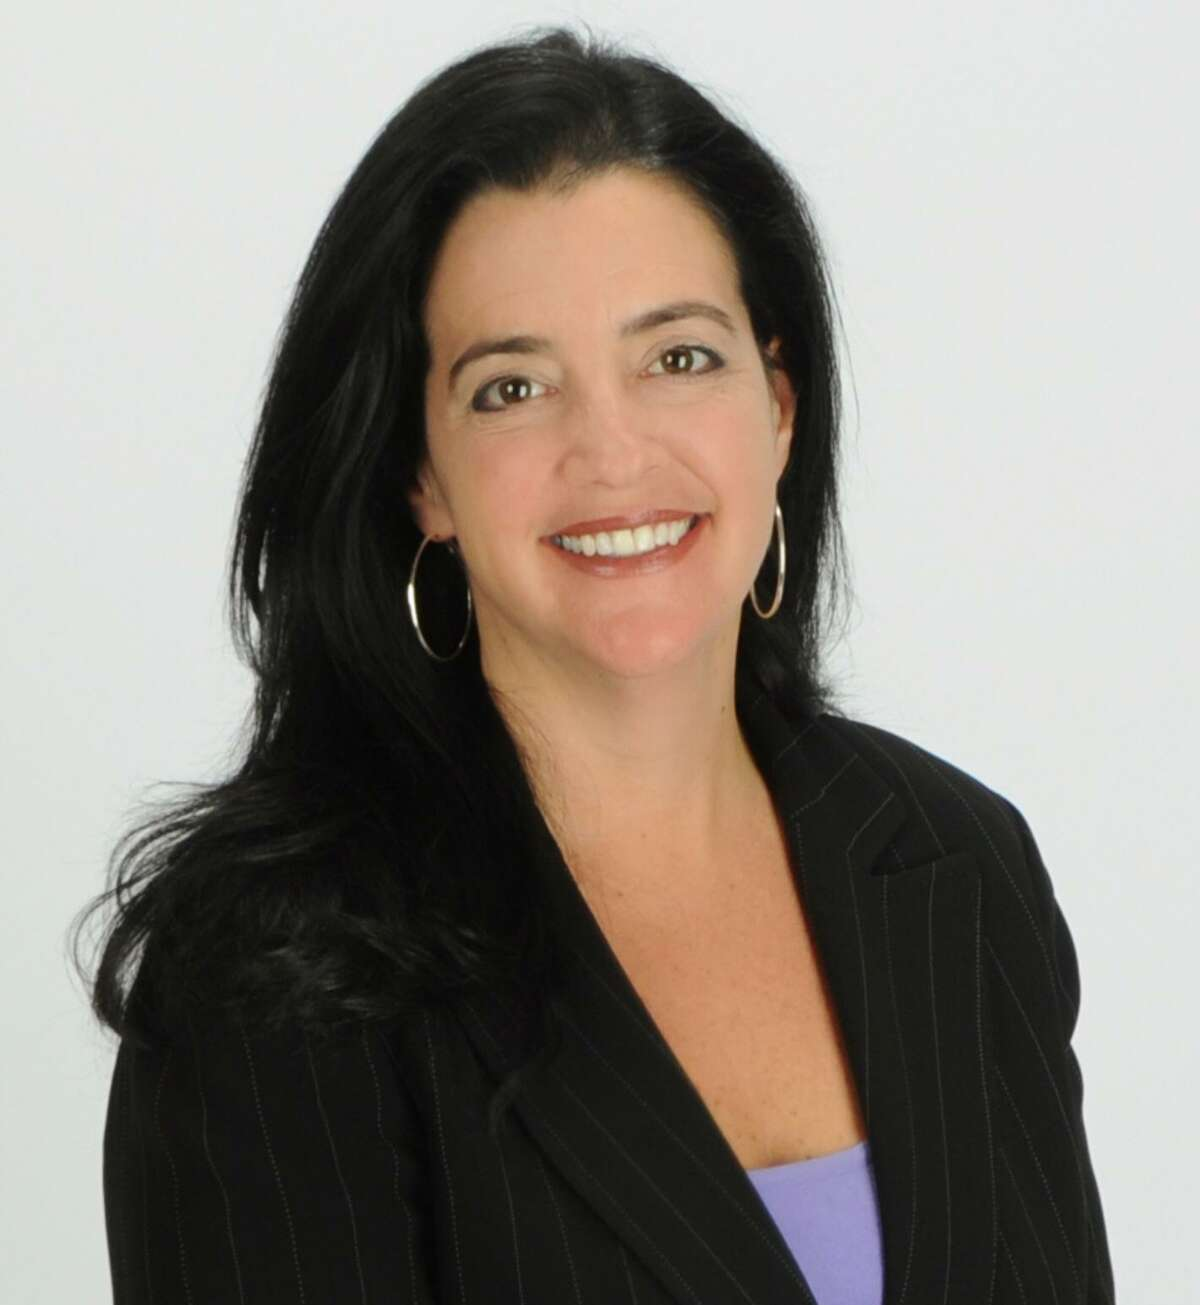 Susan Kohn of Westport is a real estate attorney with more than 20 years of experience. She can be reached at her office at 203-452-8895. Visit www.susankohnlaw.net.